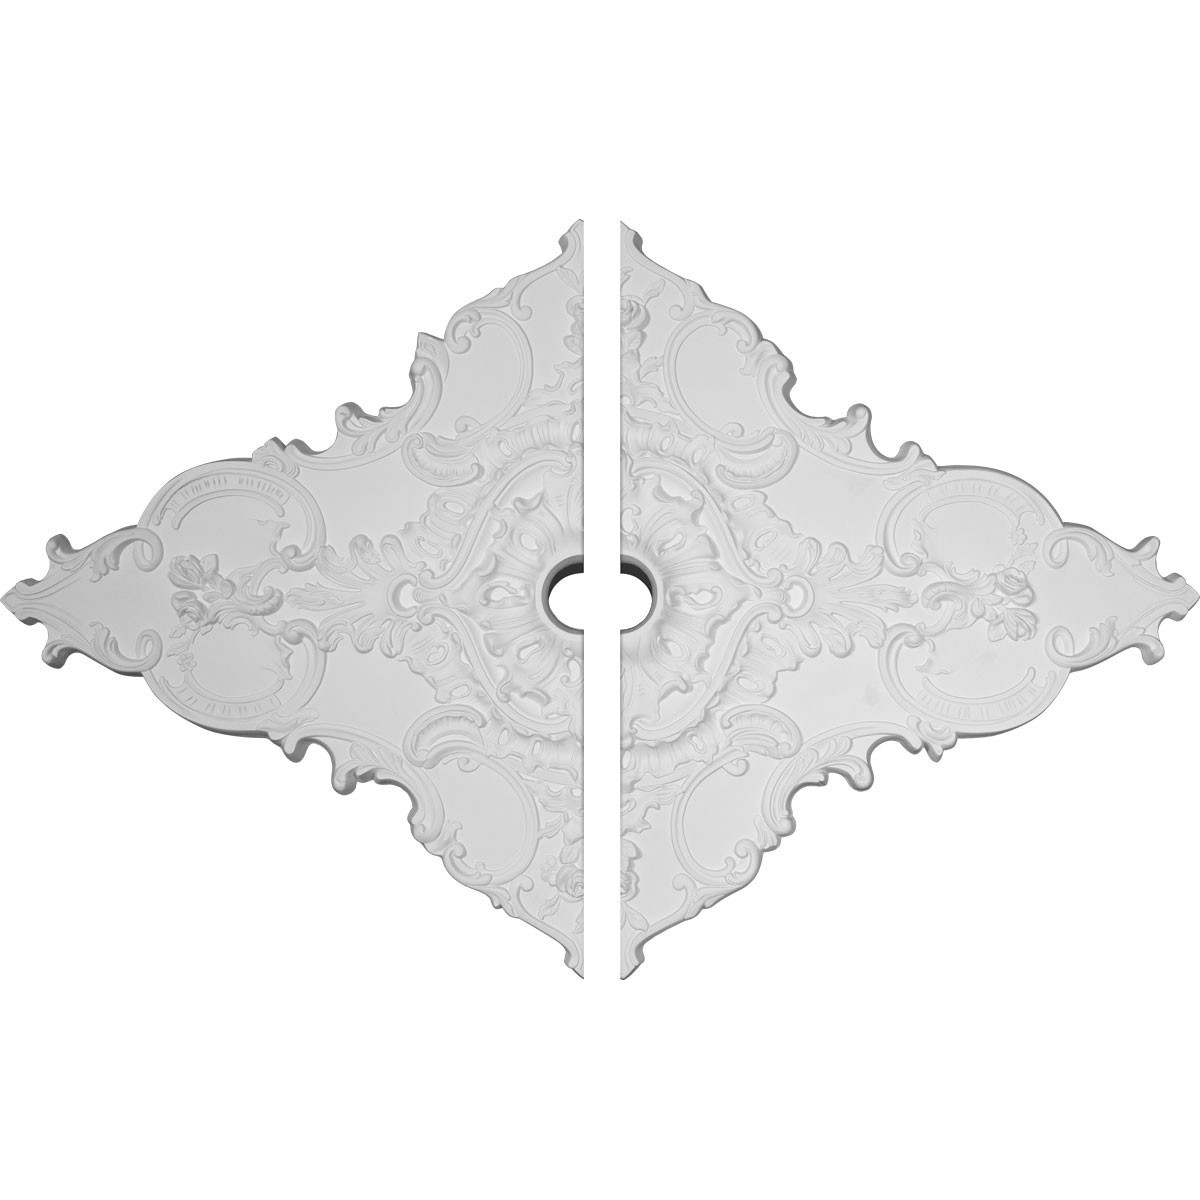 """EM-CM70X43ML2 - 67 1/4""""W x 43 3/8""""H x 4""""ID x 2""""P Melchor Diamond Ceiling Medallion, Two Piece (Fits Canopies up to 4"""")"""